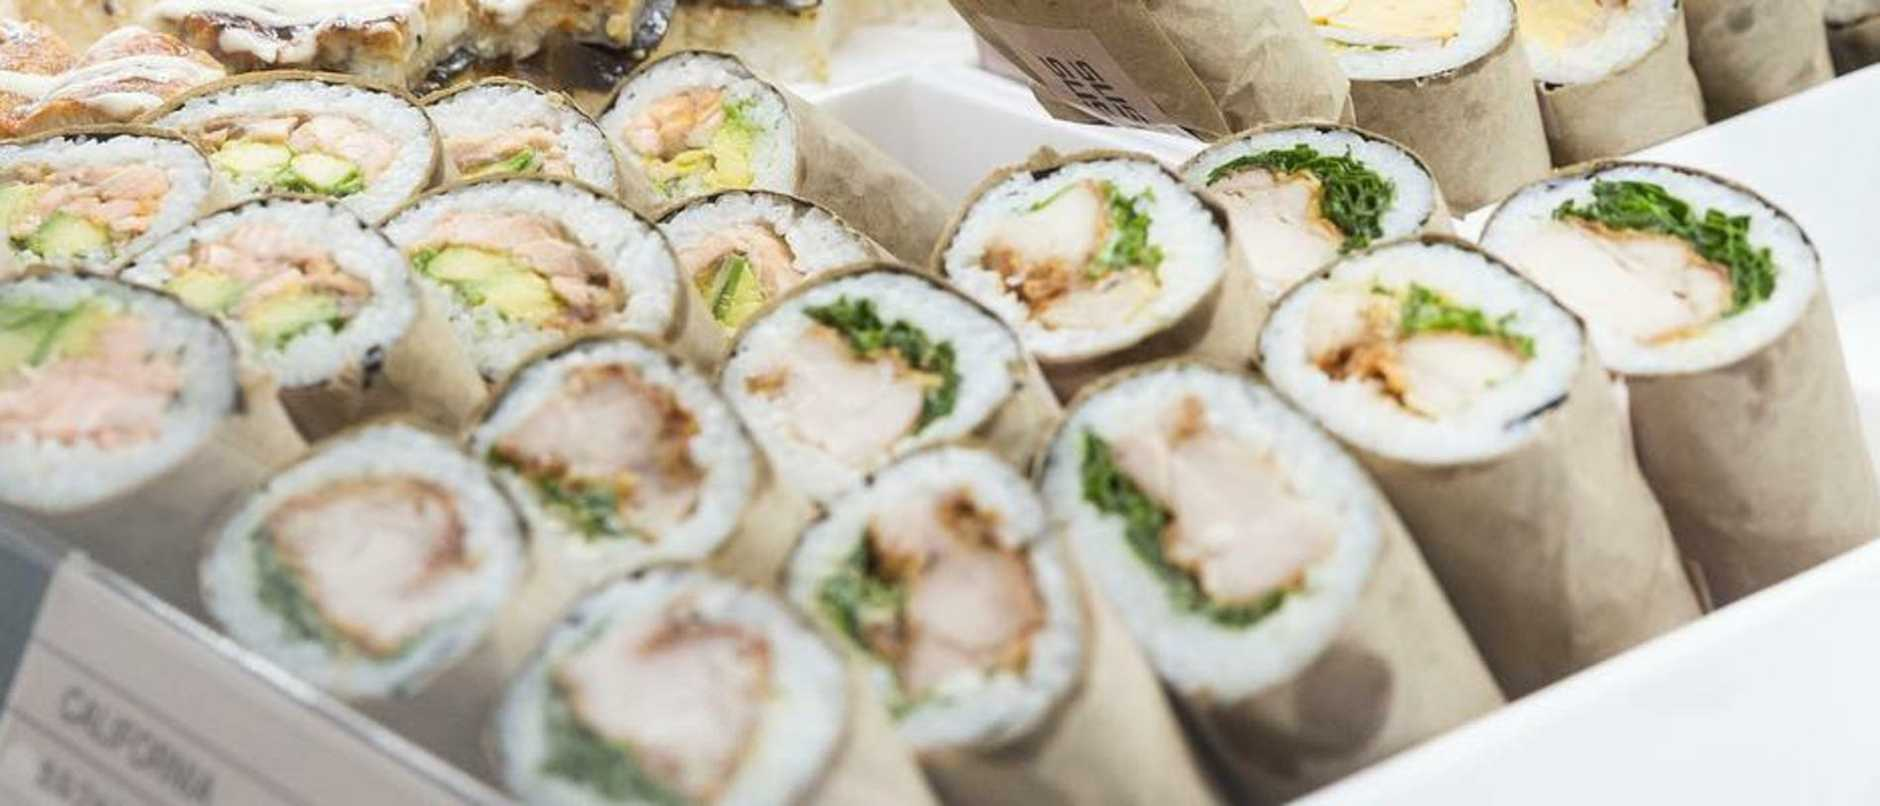 A sushi shop has been hit with a massive fine after paying workers $12 an hour. A judge has criticised the underpayment as greed and exploitation.